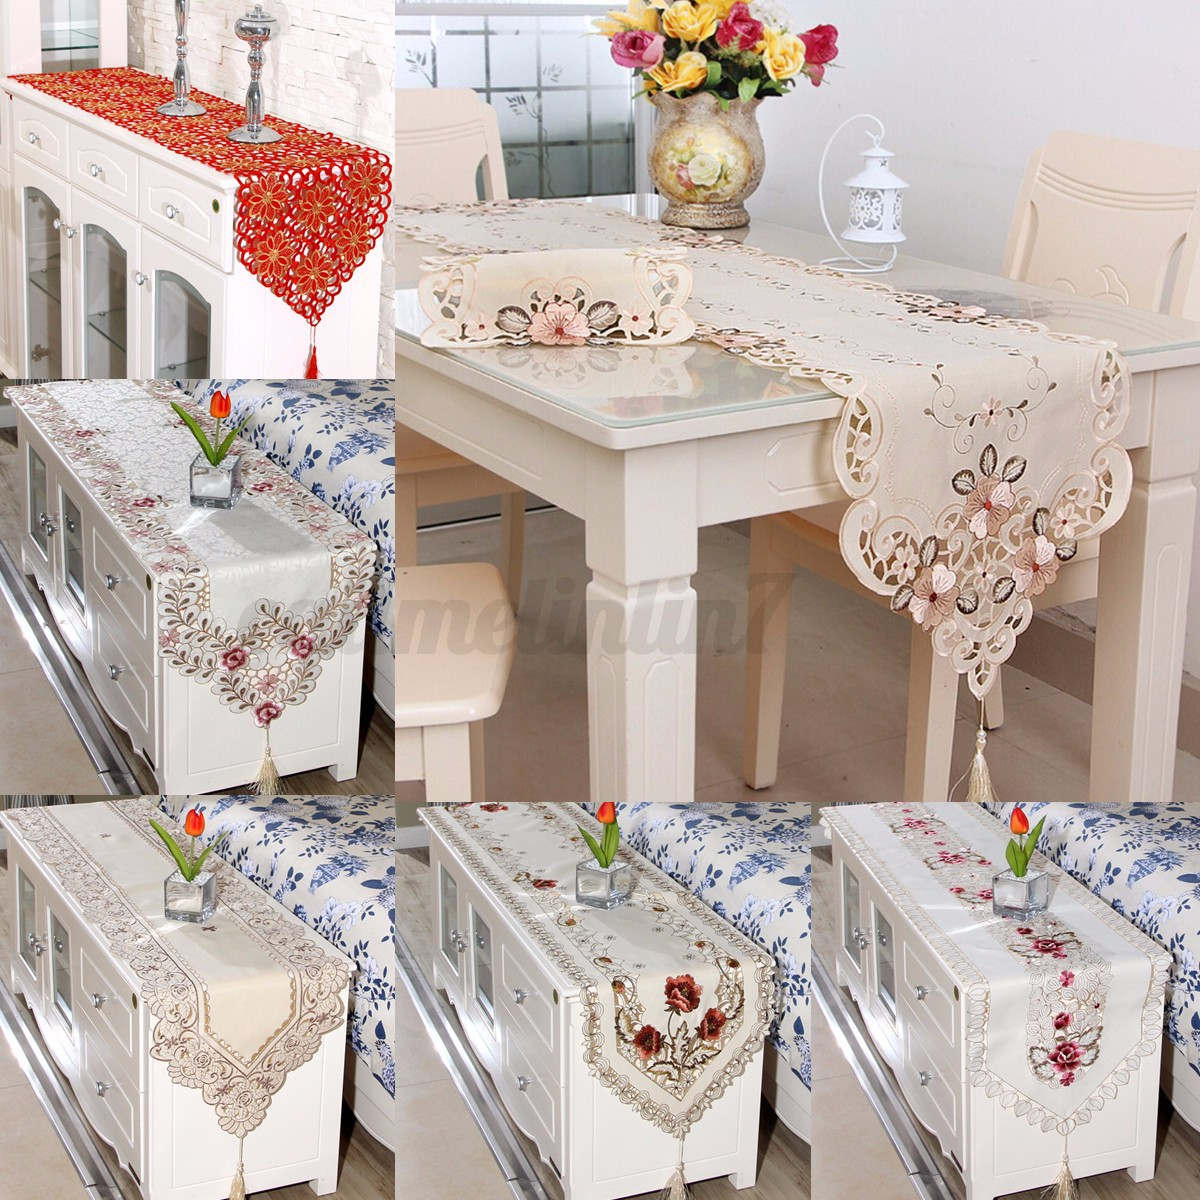 Image Is Loading Vintage Fl Embroidery Tel Edges Table Runner Cover